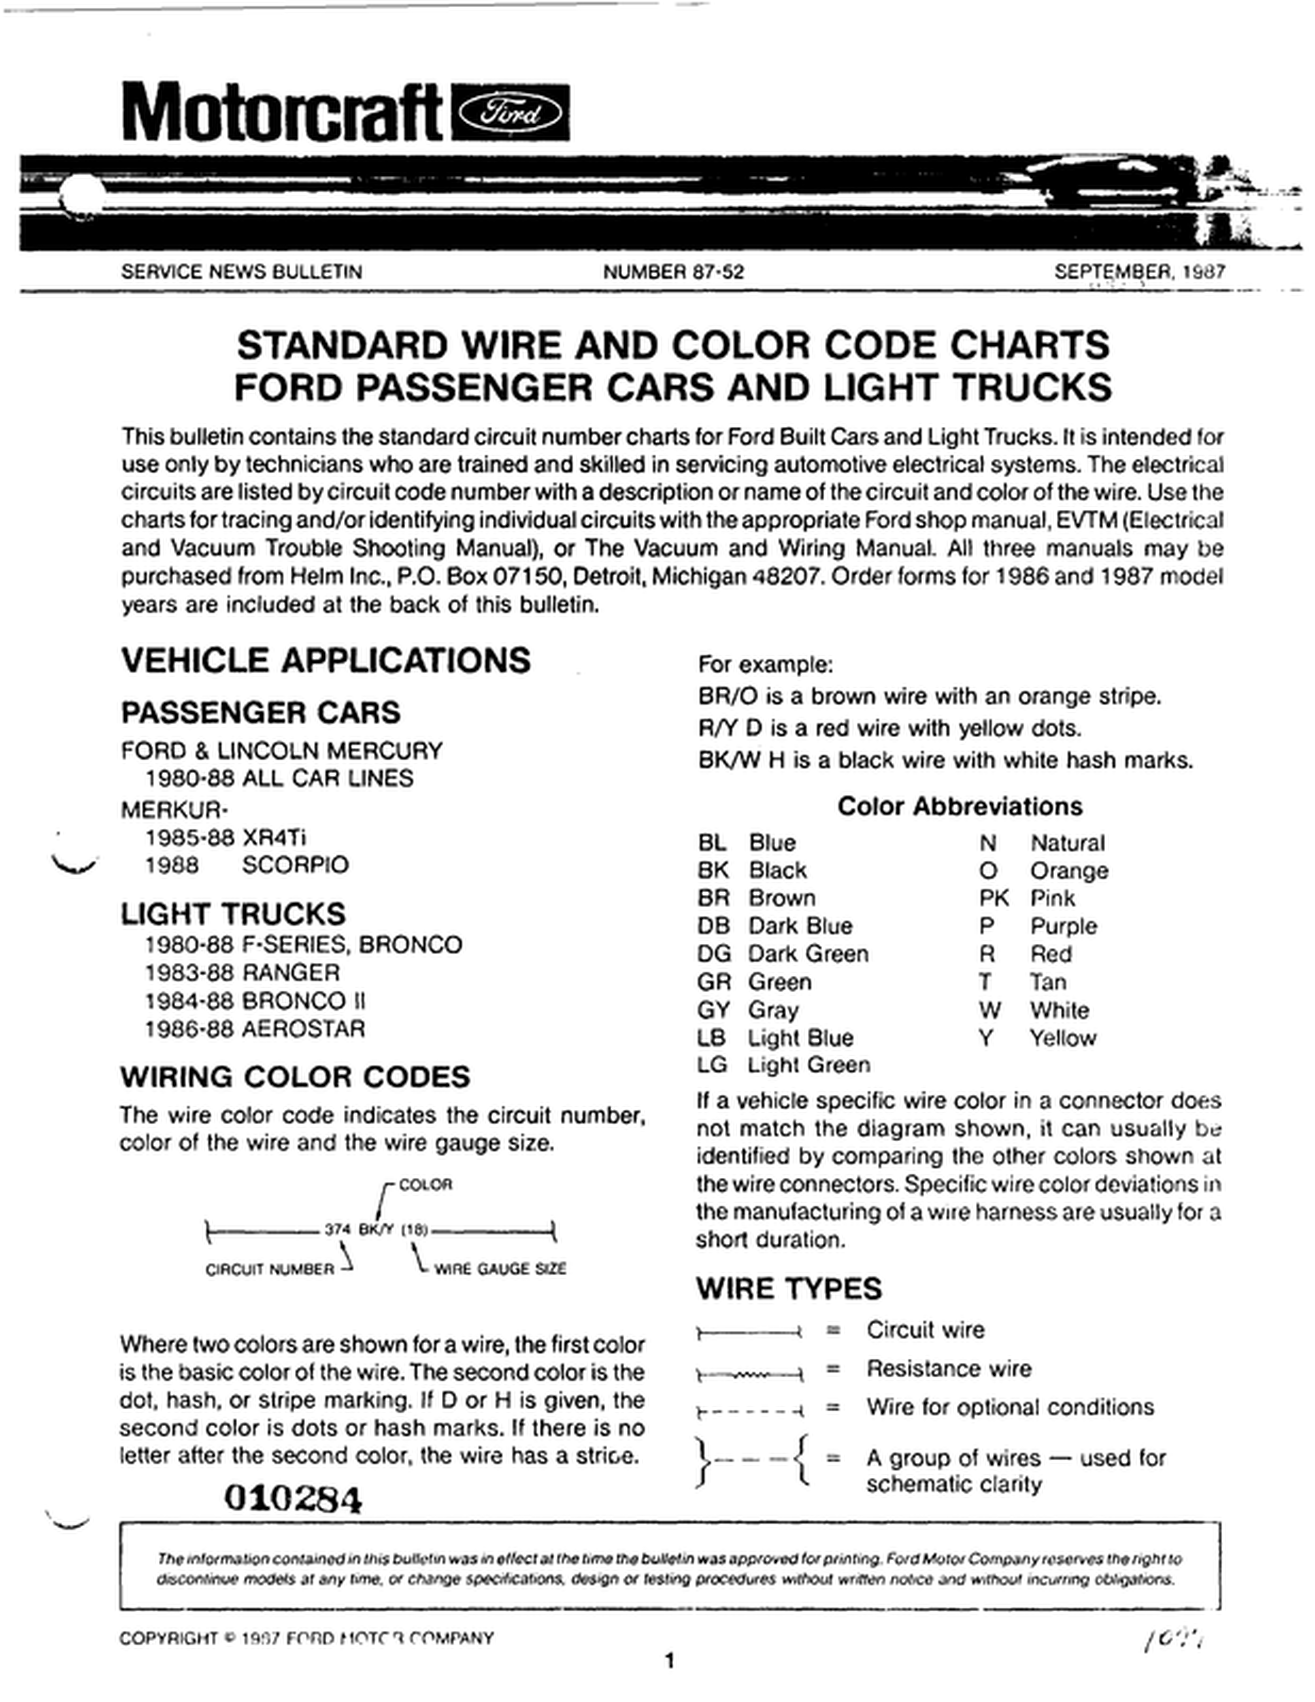 Standard Wire And Color Codes Garys Garagemahal The Bullnose Bible Code Requirements Picture